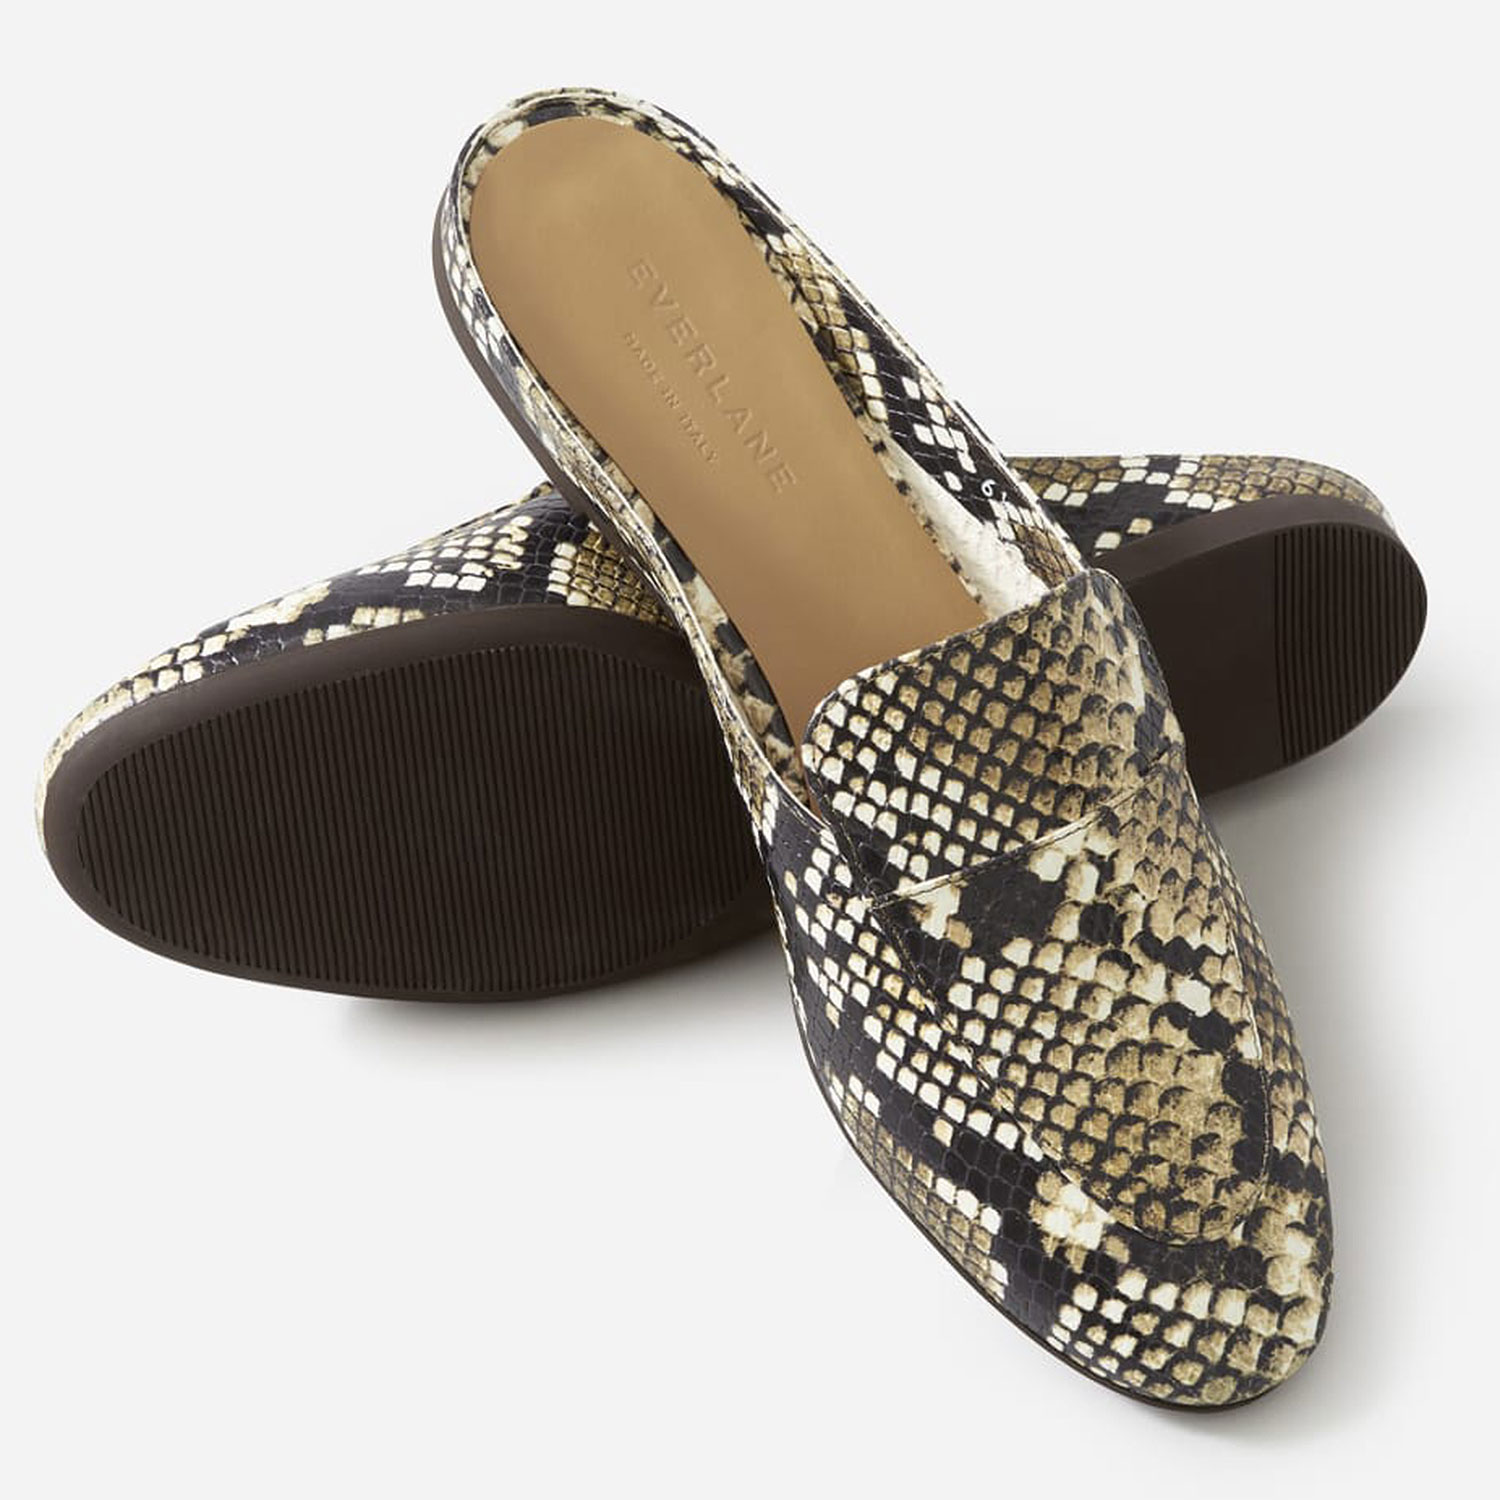 Everlane The Day Loafer Mule in Embossed Snake